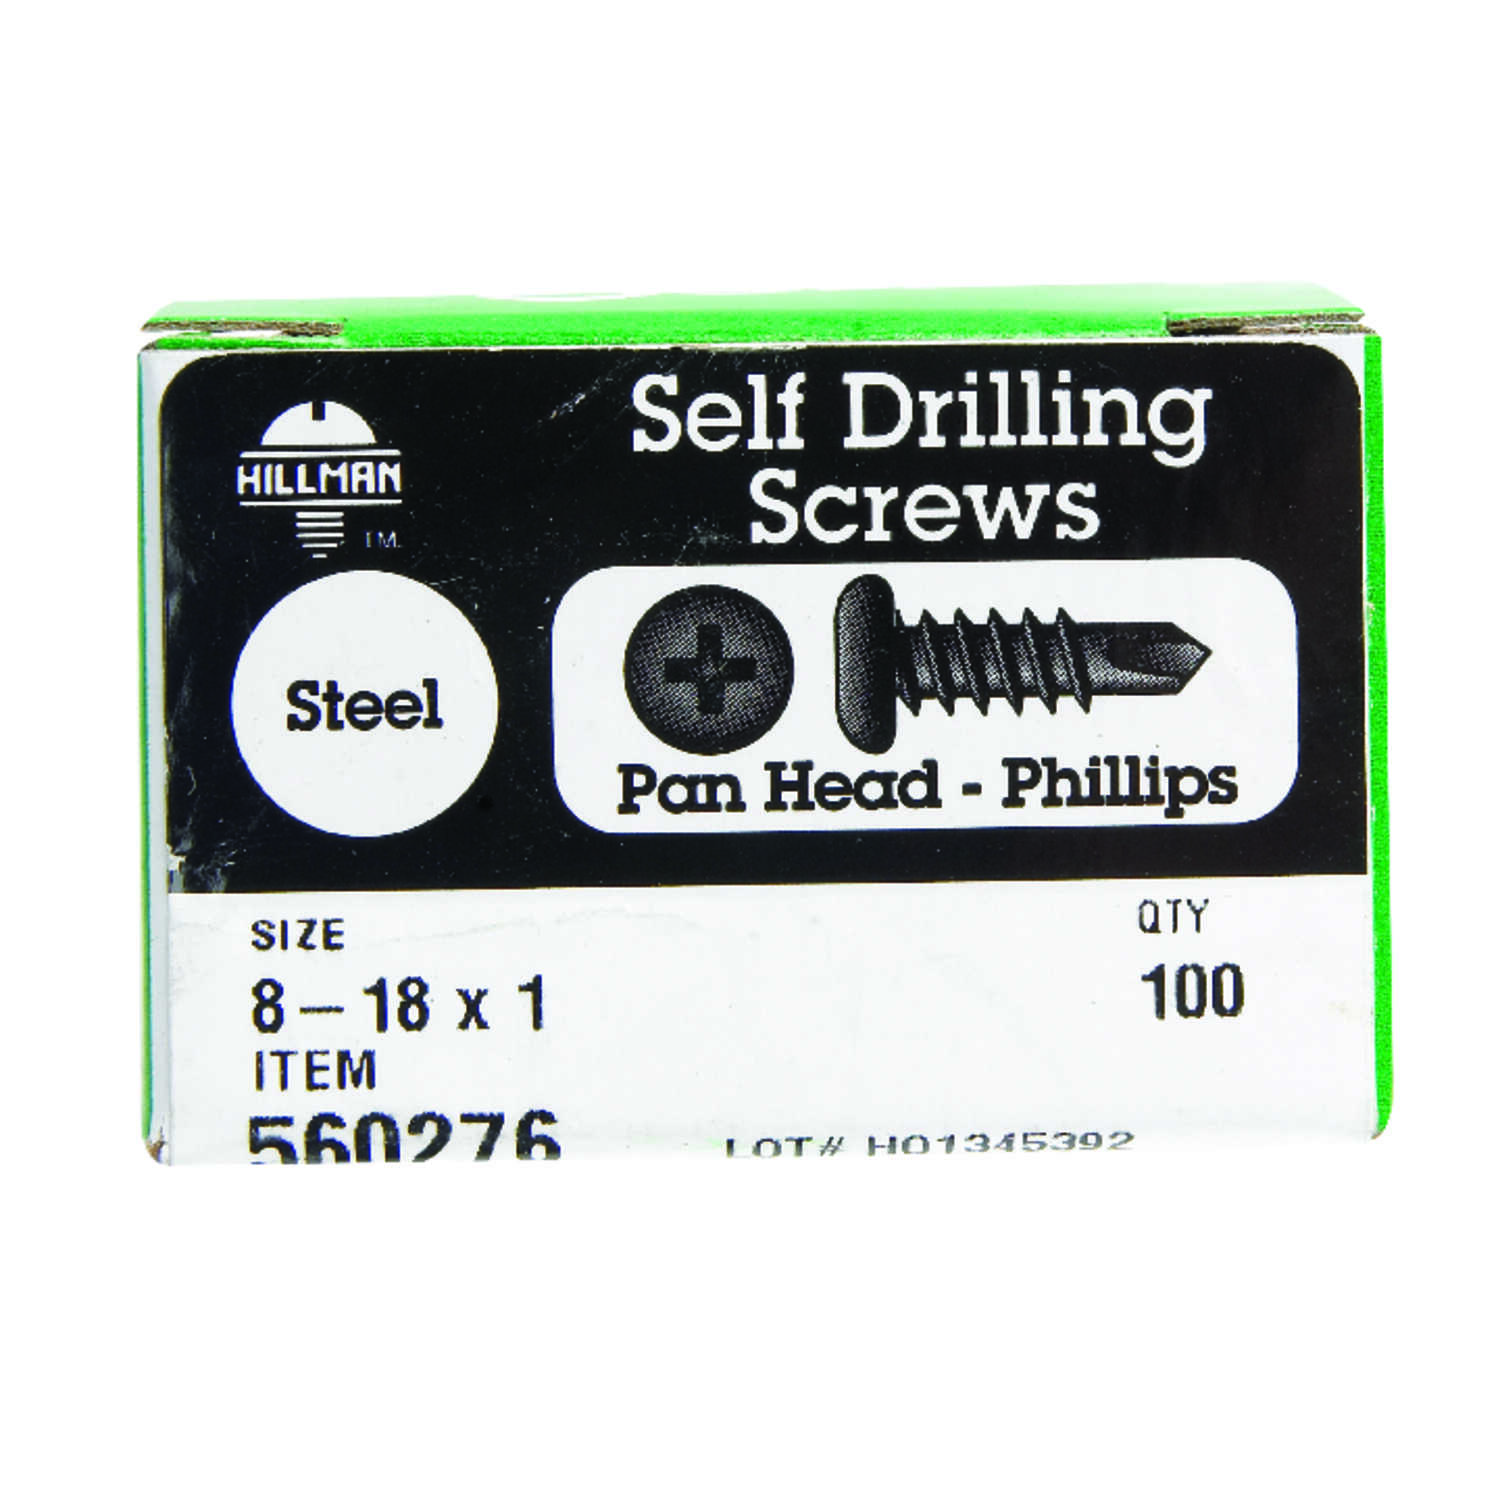 HILLMAN  8-18   x 1 in. L Phillips  Zinc-Plated  Pan Head Self- Drilling Screws  100 per box Steel